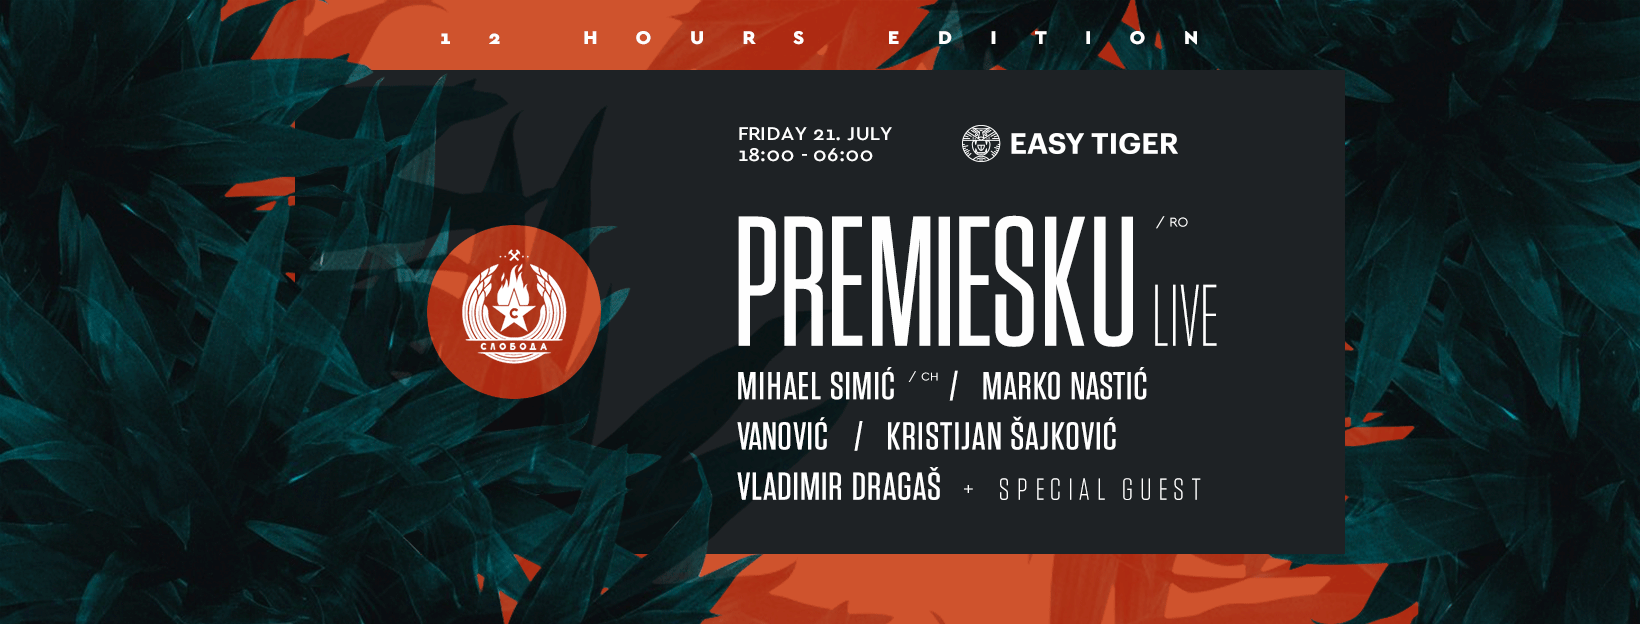 Easy Tiger - Sloboda - 21. jul